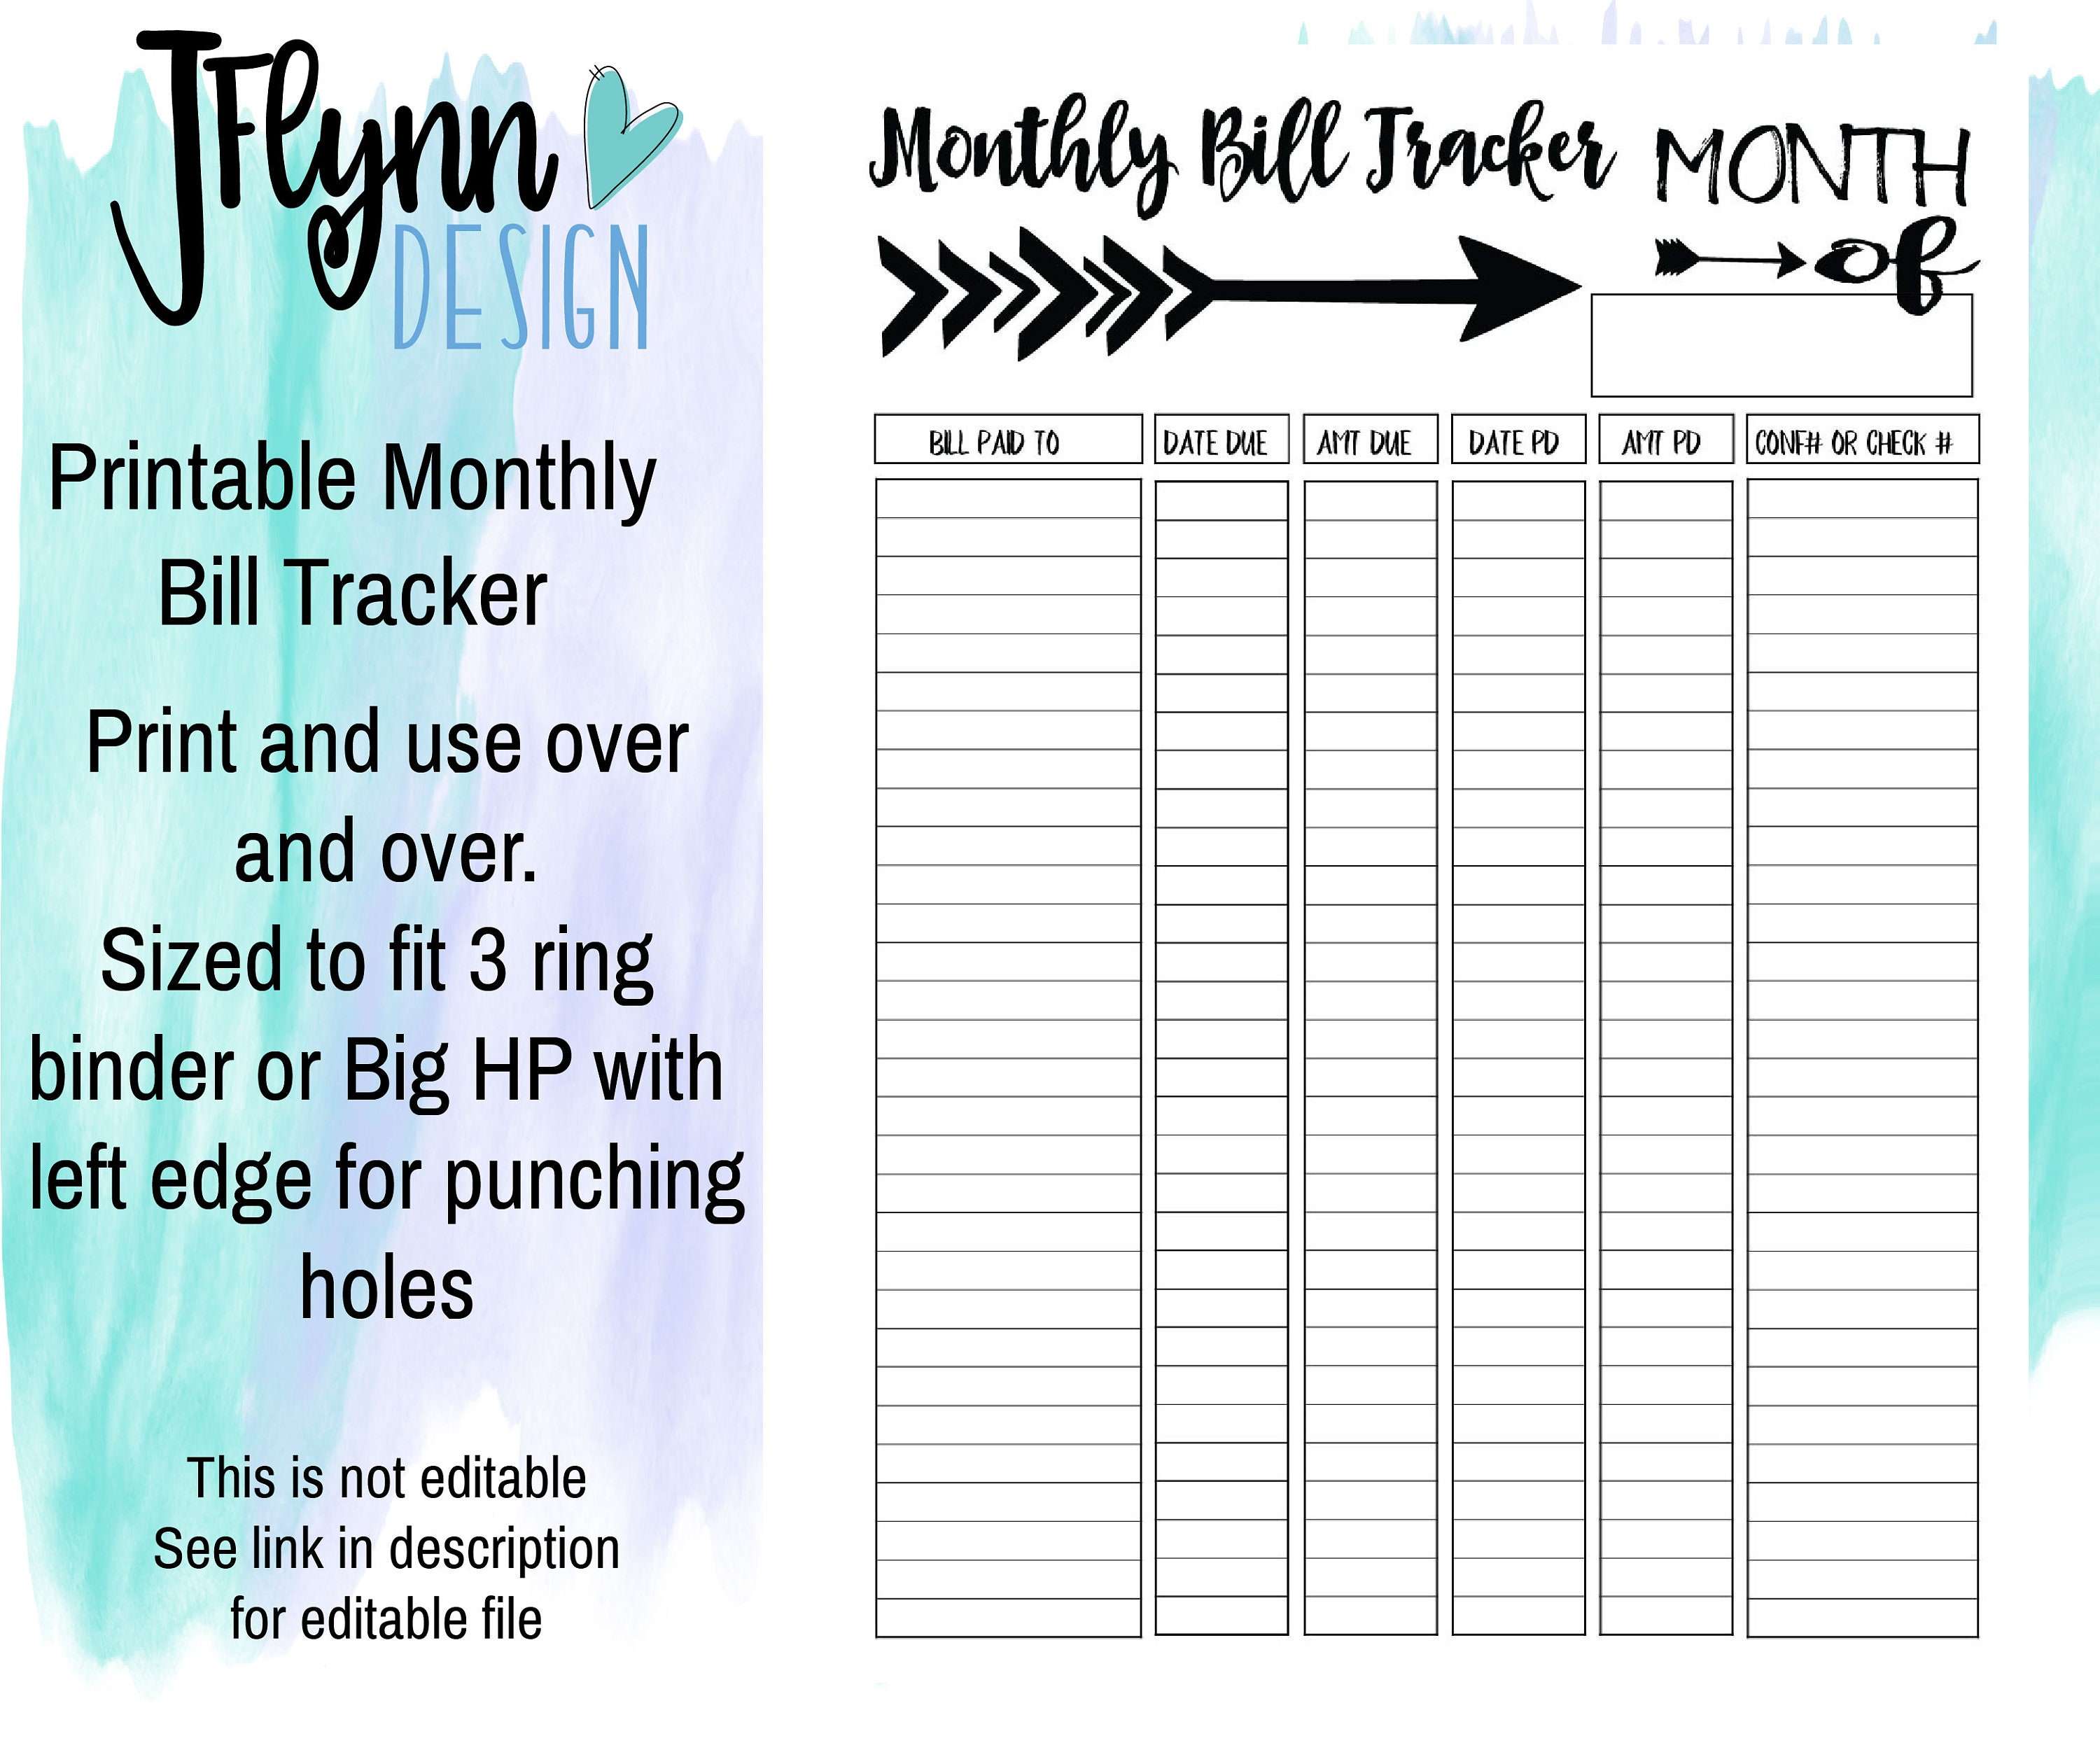 image relating to Monthly Bill Tracker Printable identify Every month Invoice Tracker PDF Printable, fast down load, electronic down load, printable, expenses